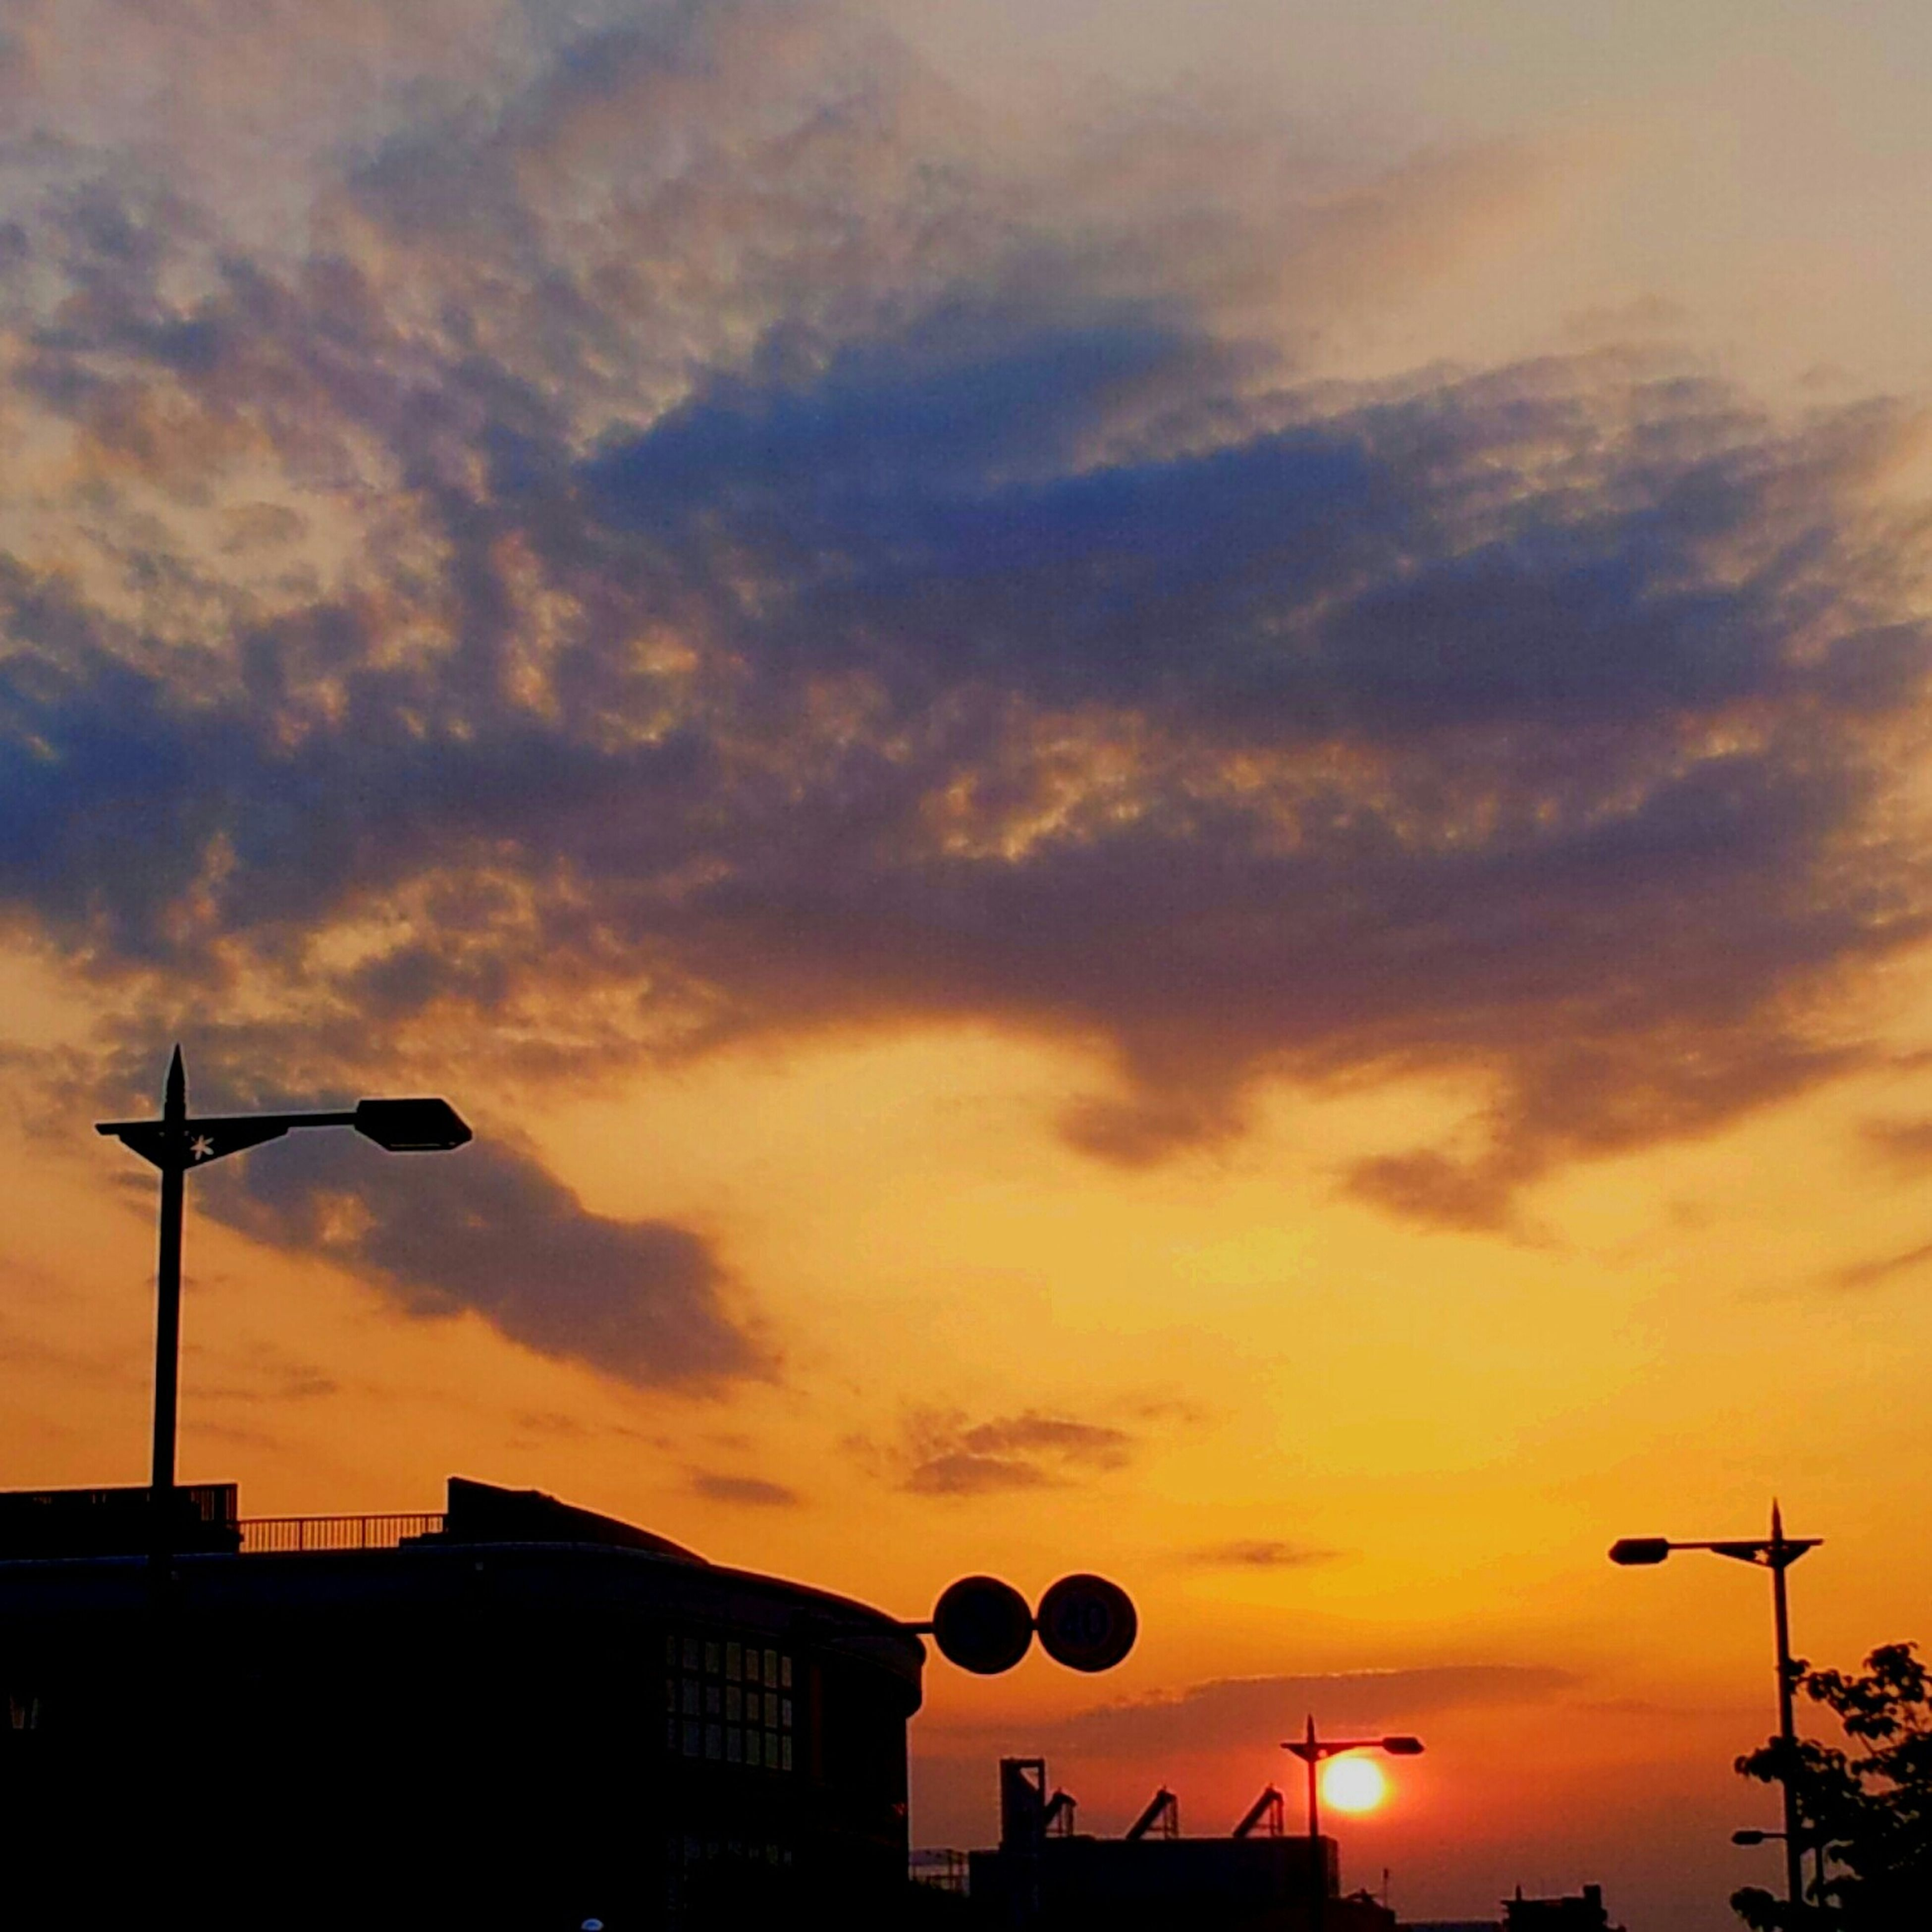 sunset, silhouette, sky, orange color, low angle view, cloud - sky, street light, building exterior, built structure, architecture, communication, dramatic sky, cloudy, cloud, nature, high section, beauty in nature, outdoors, lighting equipment, scenics